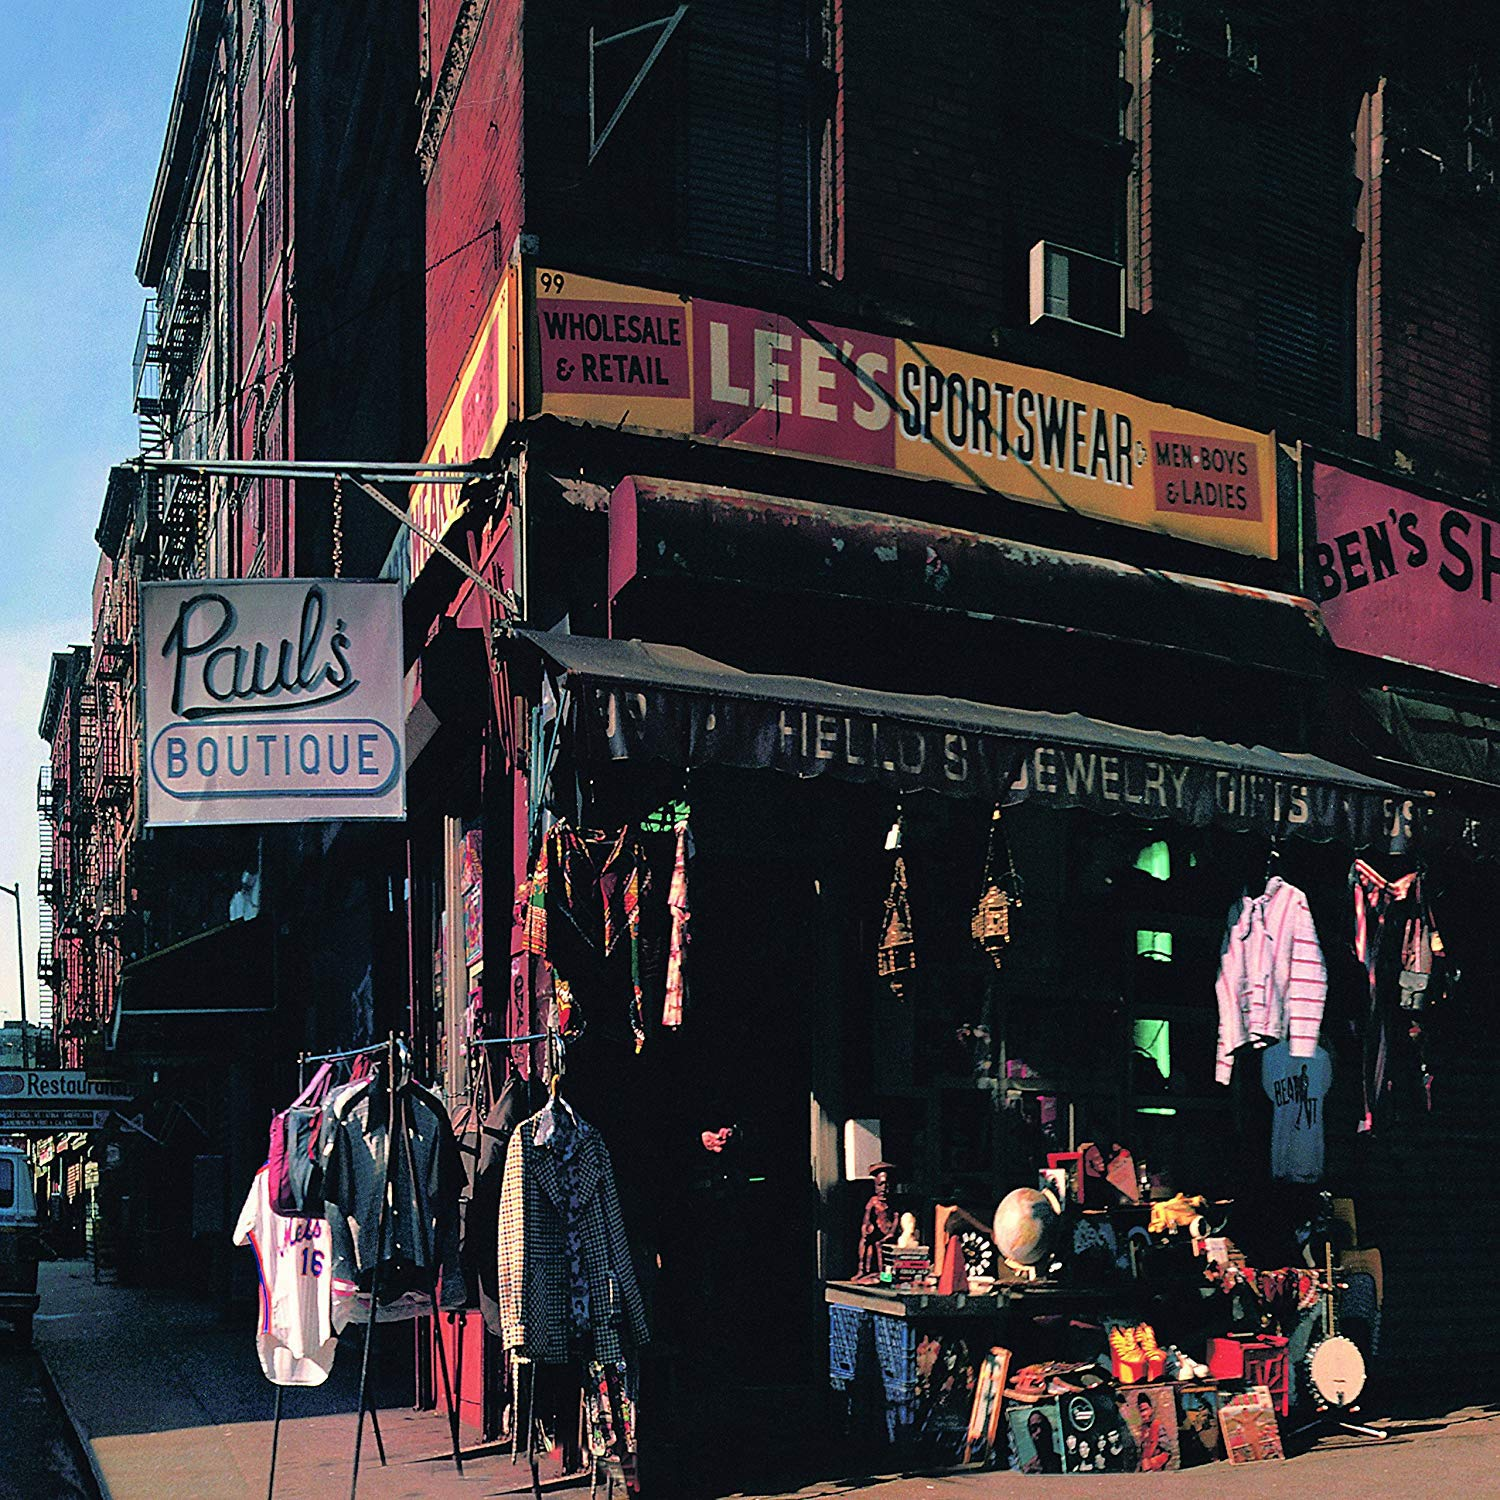 9.7 Beastie Boys - Paul's Boutique